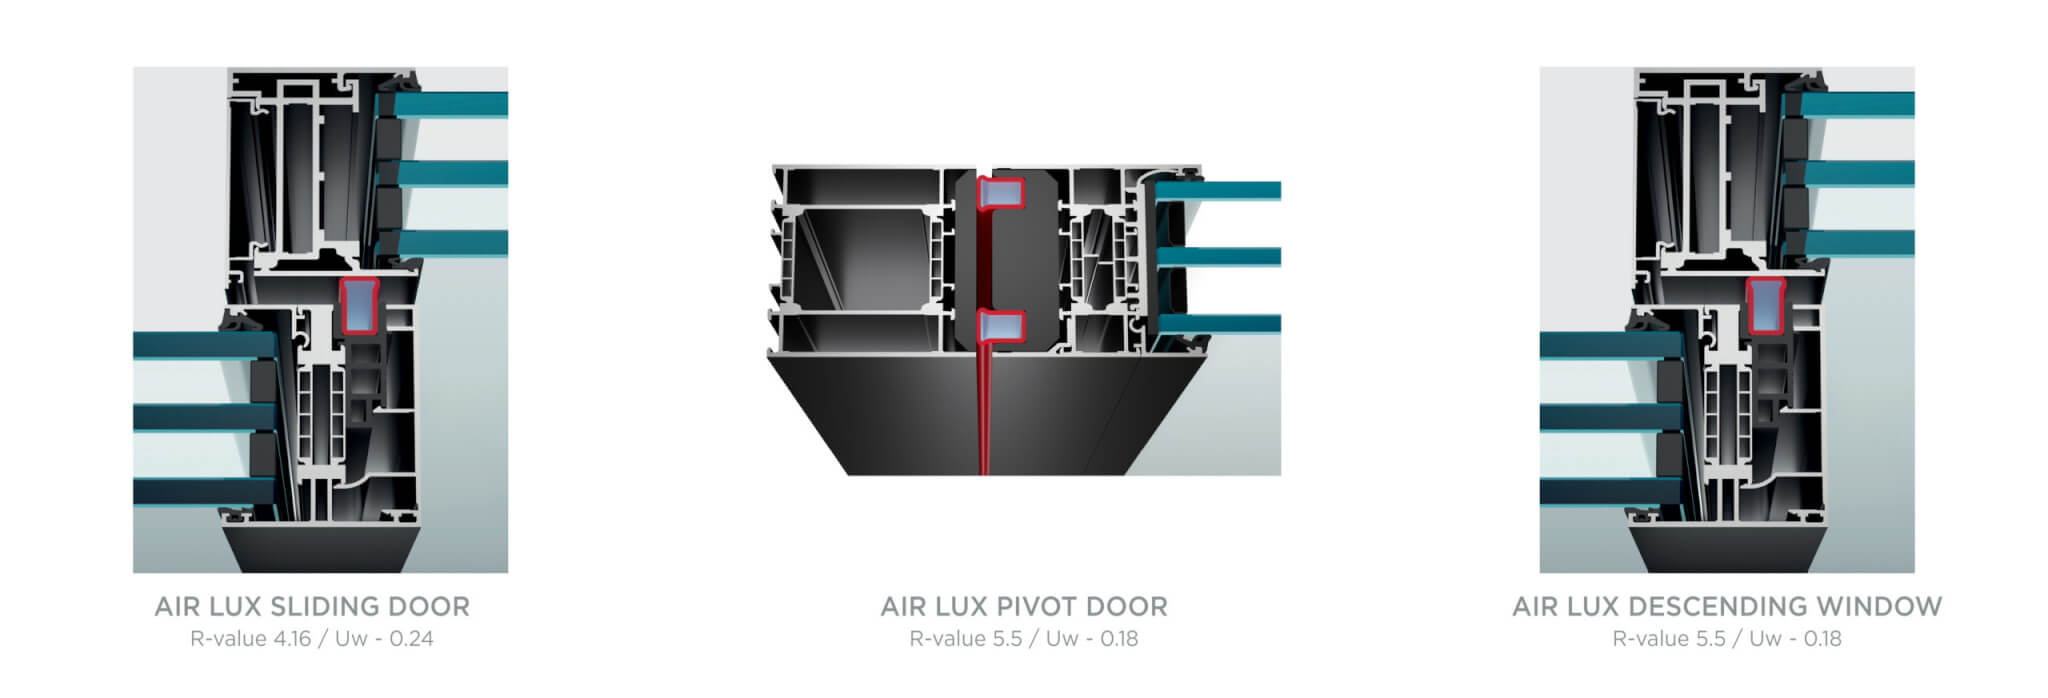 pivot door, sliding door, european door, european windows, glo windows